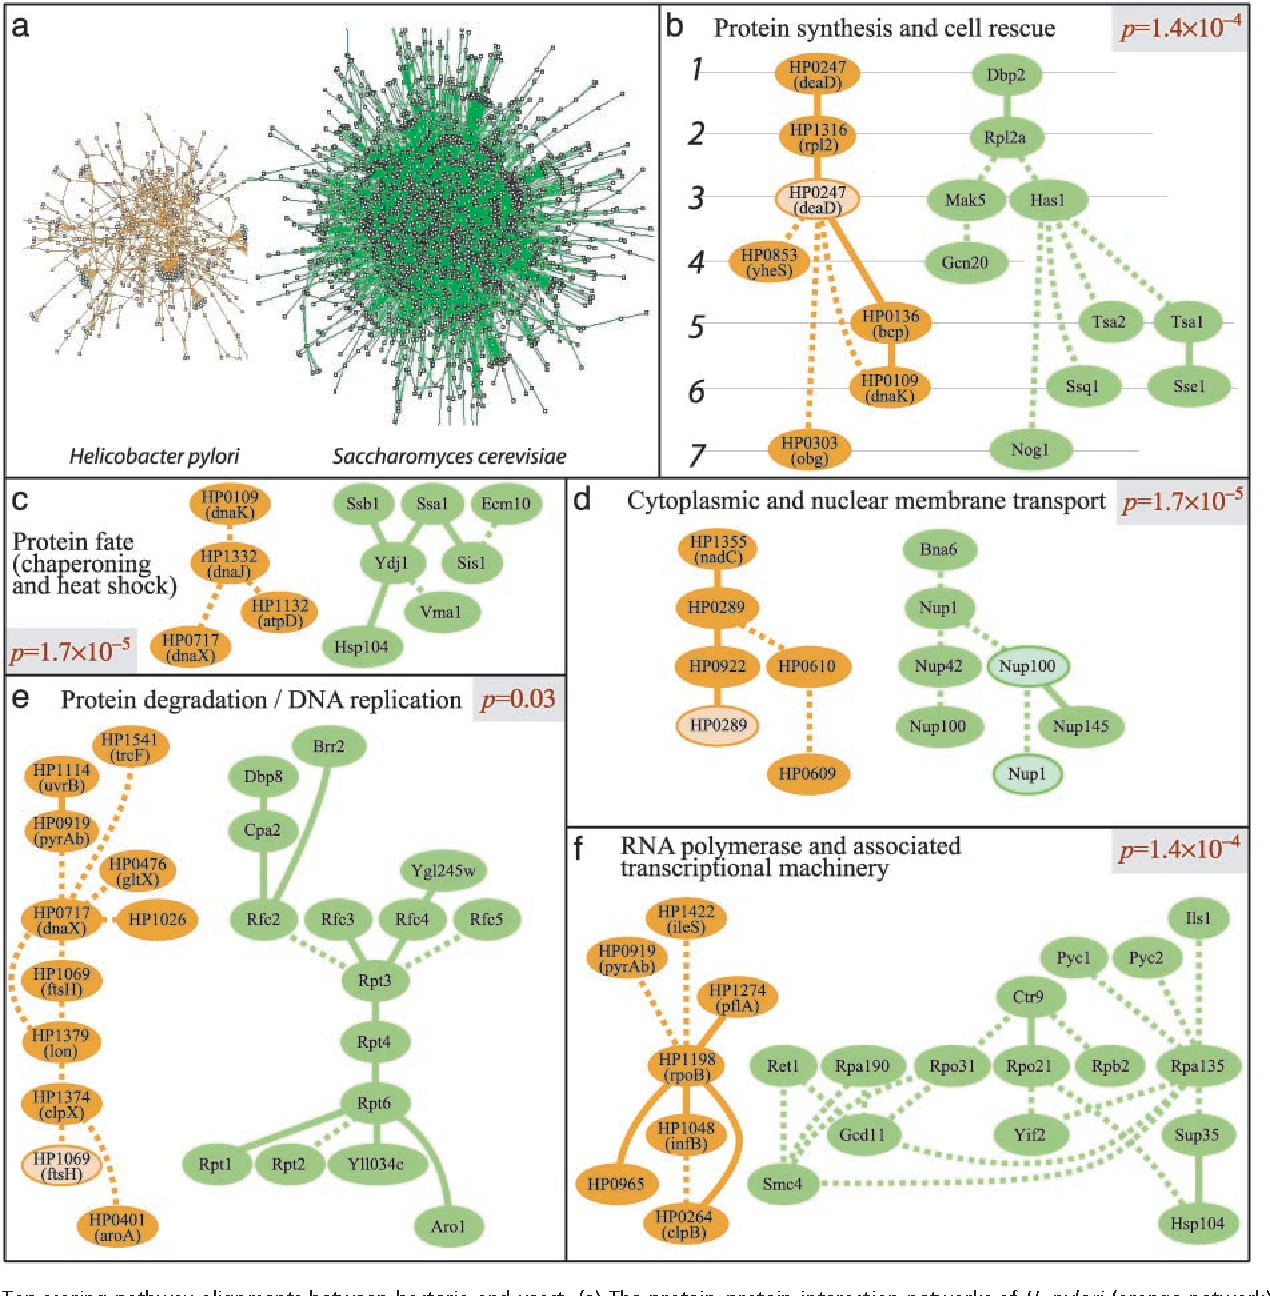 Fig. 2. Top-scoring pathway alignments between bacteria and yeast. (a) The protein–protein interaction networks of H. pylori (orange network) and S. cerevisiae (green network) were globally aligned to reveal conserved network regions (b–f ). Proteins with above-threshold sequence similarity are placed on the same row of the pathway alignment (e.g., deaD and Dbp2 in row 1 of b). Direct protein interactions appear as solid links, and gaps or mismatches are dotted. Proteins recurring within a region due to multiple sequence homologies (e.g., deaD in b) are lighter in color. P values were computed by using random graphs as described in Methods.